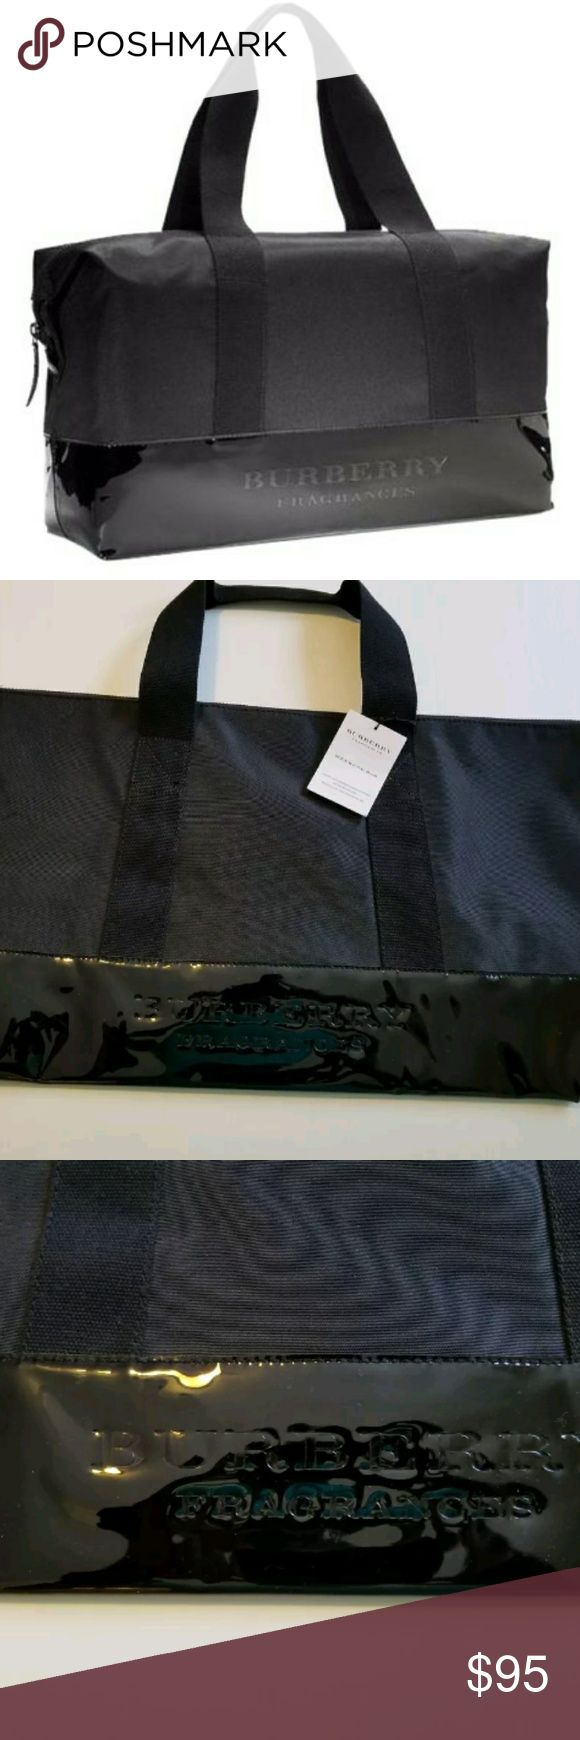 """NIP Burberry Fragrances Weekender Duffle Tote Bag New With Tag & In The Packaging Burberry Fragrances Weekender Travel Duffle Tote Bag.  Black With Black Patent Leather Bottom & Handles.  Snap Closure On Each Side To Make It A Stchel Style Bag. Easy Ti Wioe Clean Exteruor With A Fully Lined Signature Burberry Print Interior.  The BagCan Be Used For Travel, Work School Or Everyday Wear. A Really Nice & Stylish Piece.  W25"""" x L13.5"""" x D 5.5"""" With An 8in Strap Drop.  Thank You & Please Feel…"""